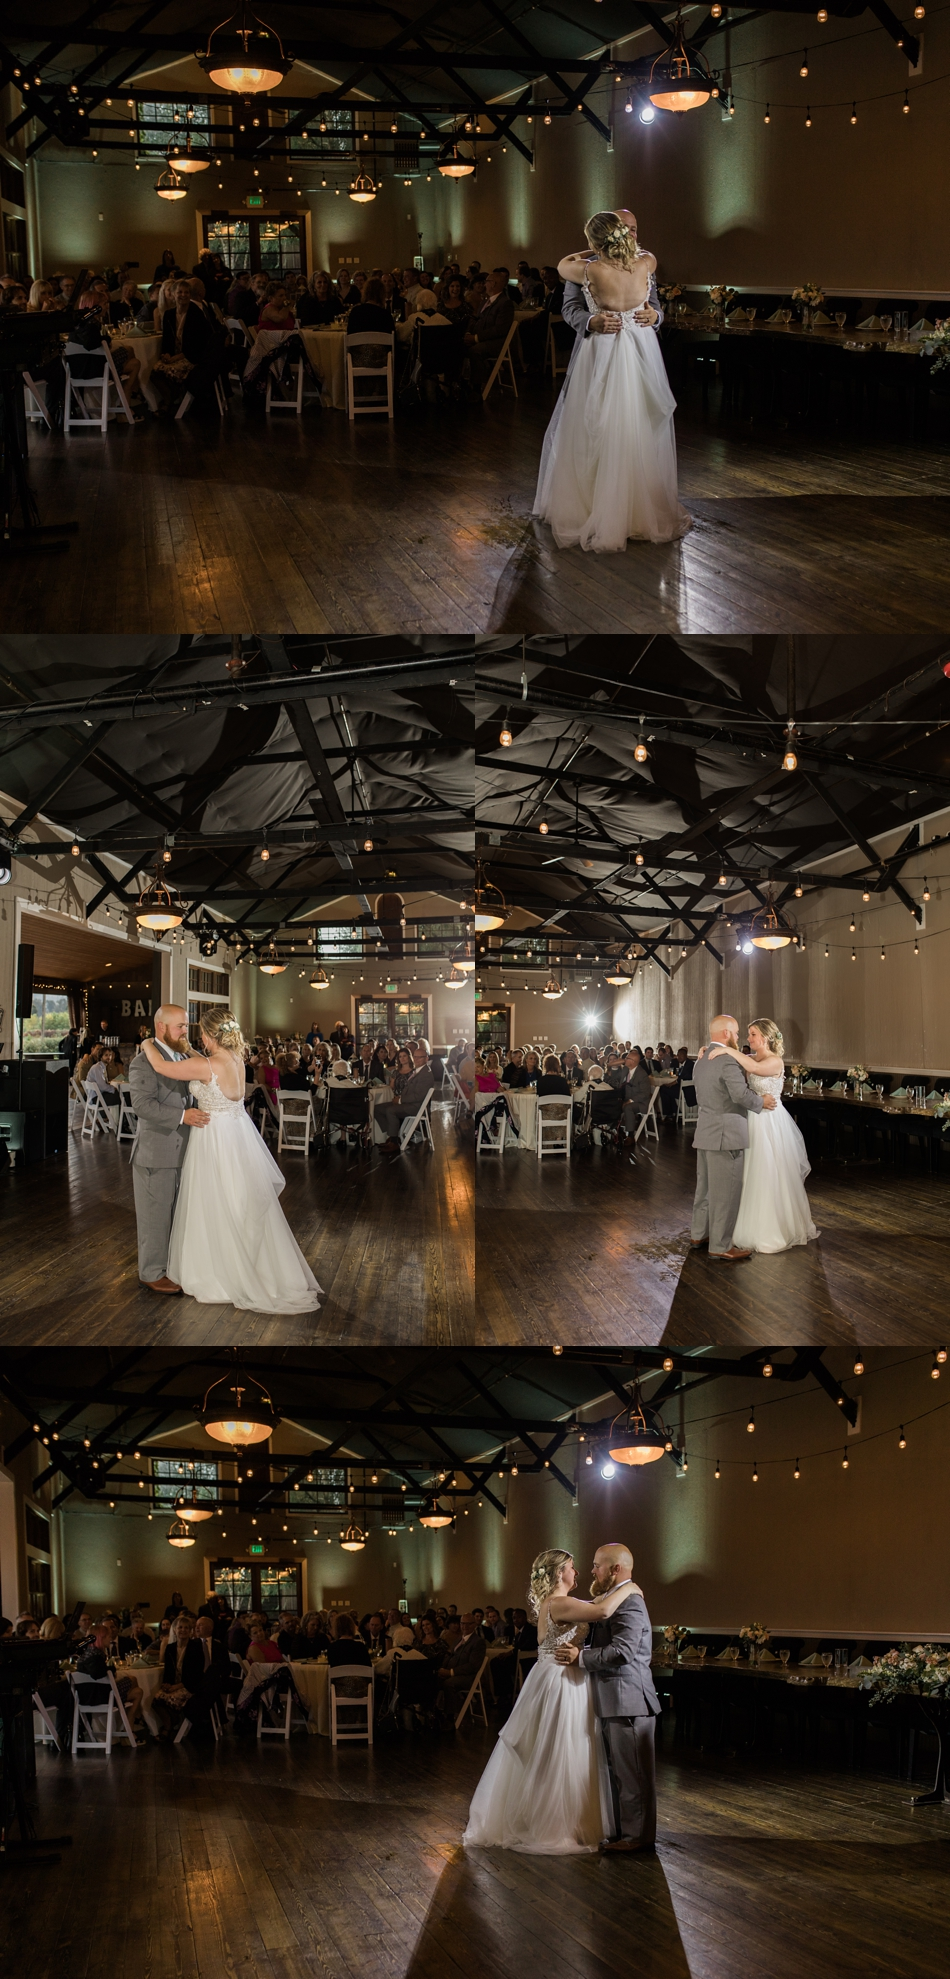 Photo of bride and groom dancing at a Hidden Meadows Farms wedding in Snohomish, a rustic yet elegant wedding venue near Seattle. | Joanna Monger Photography